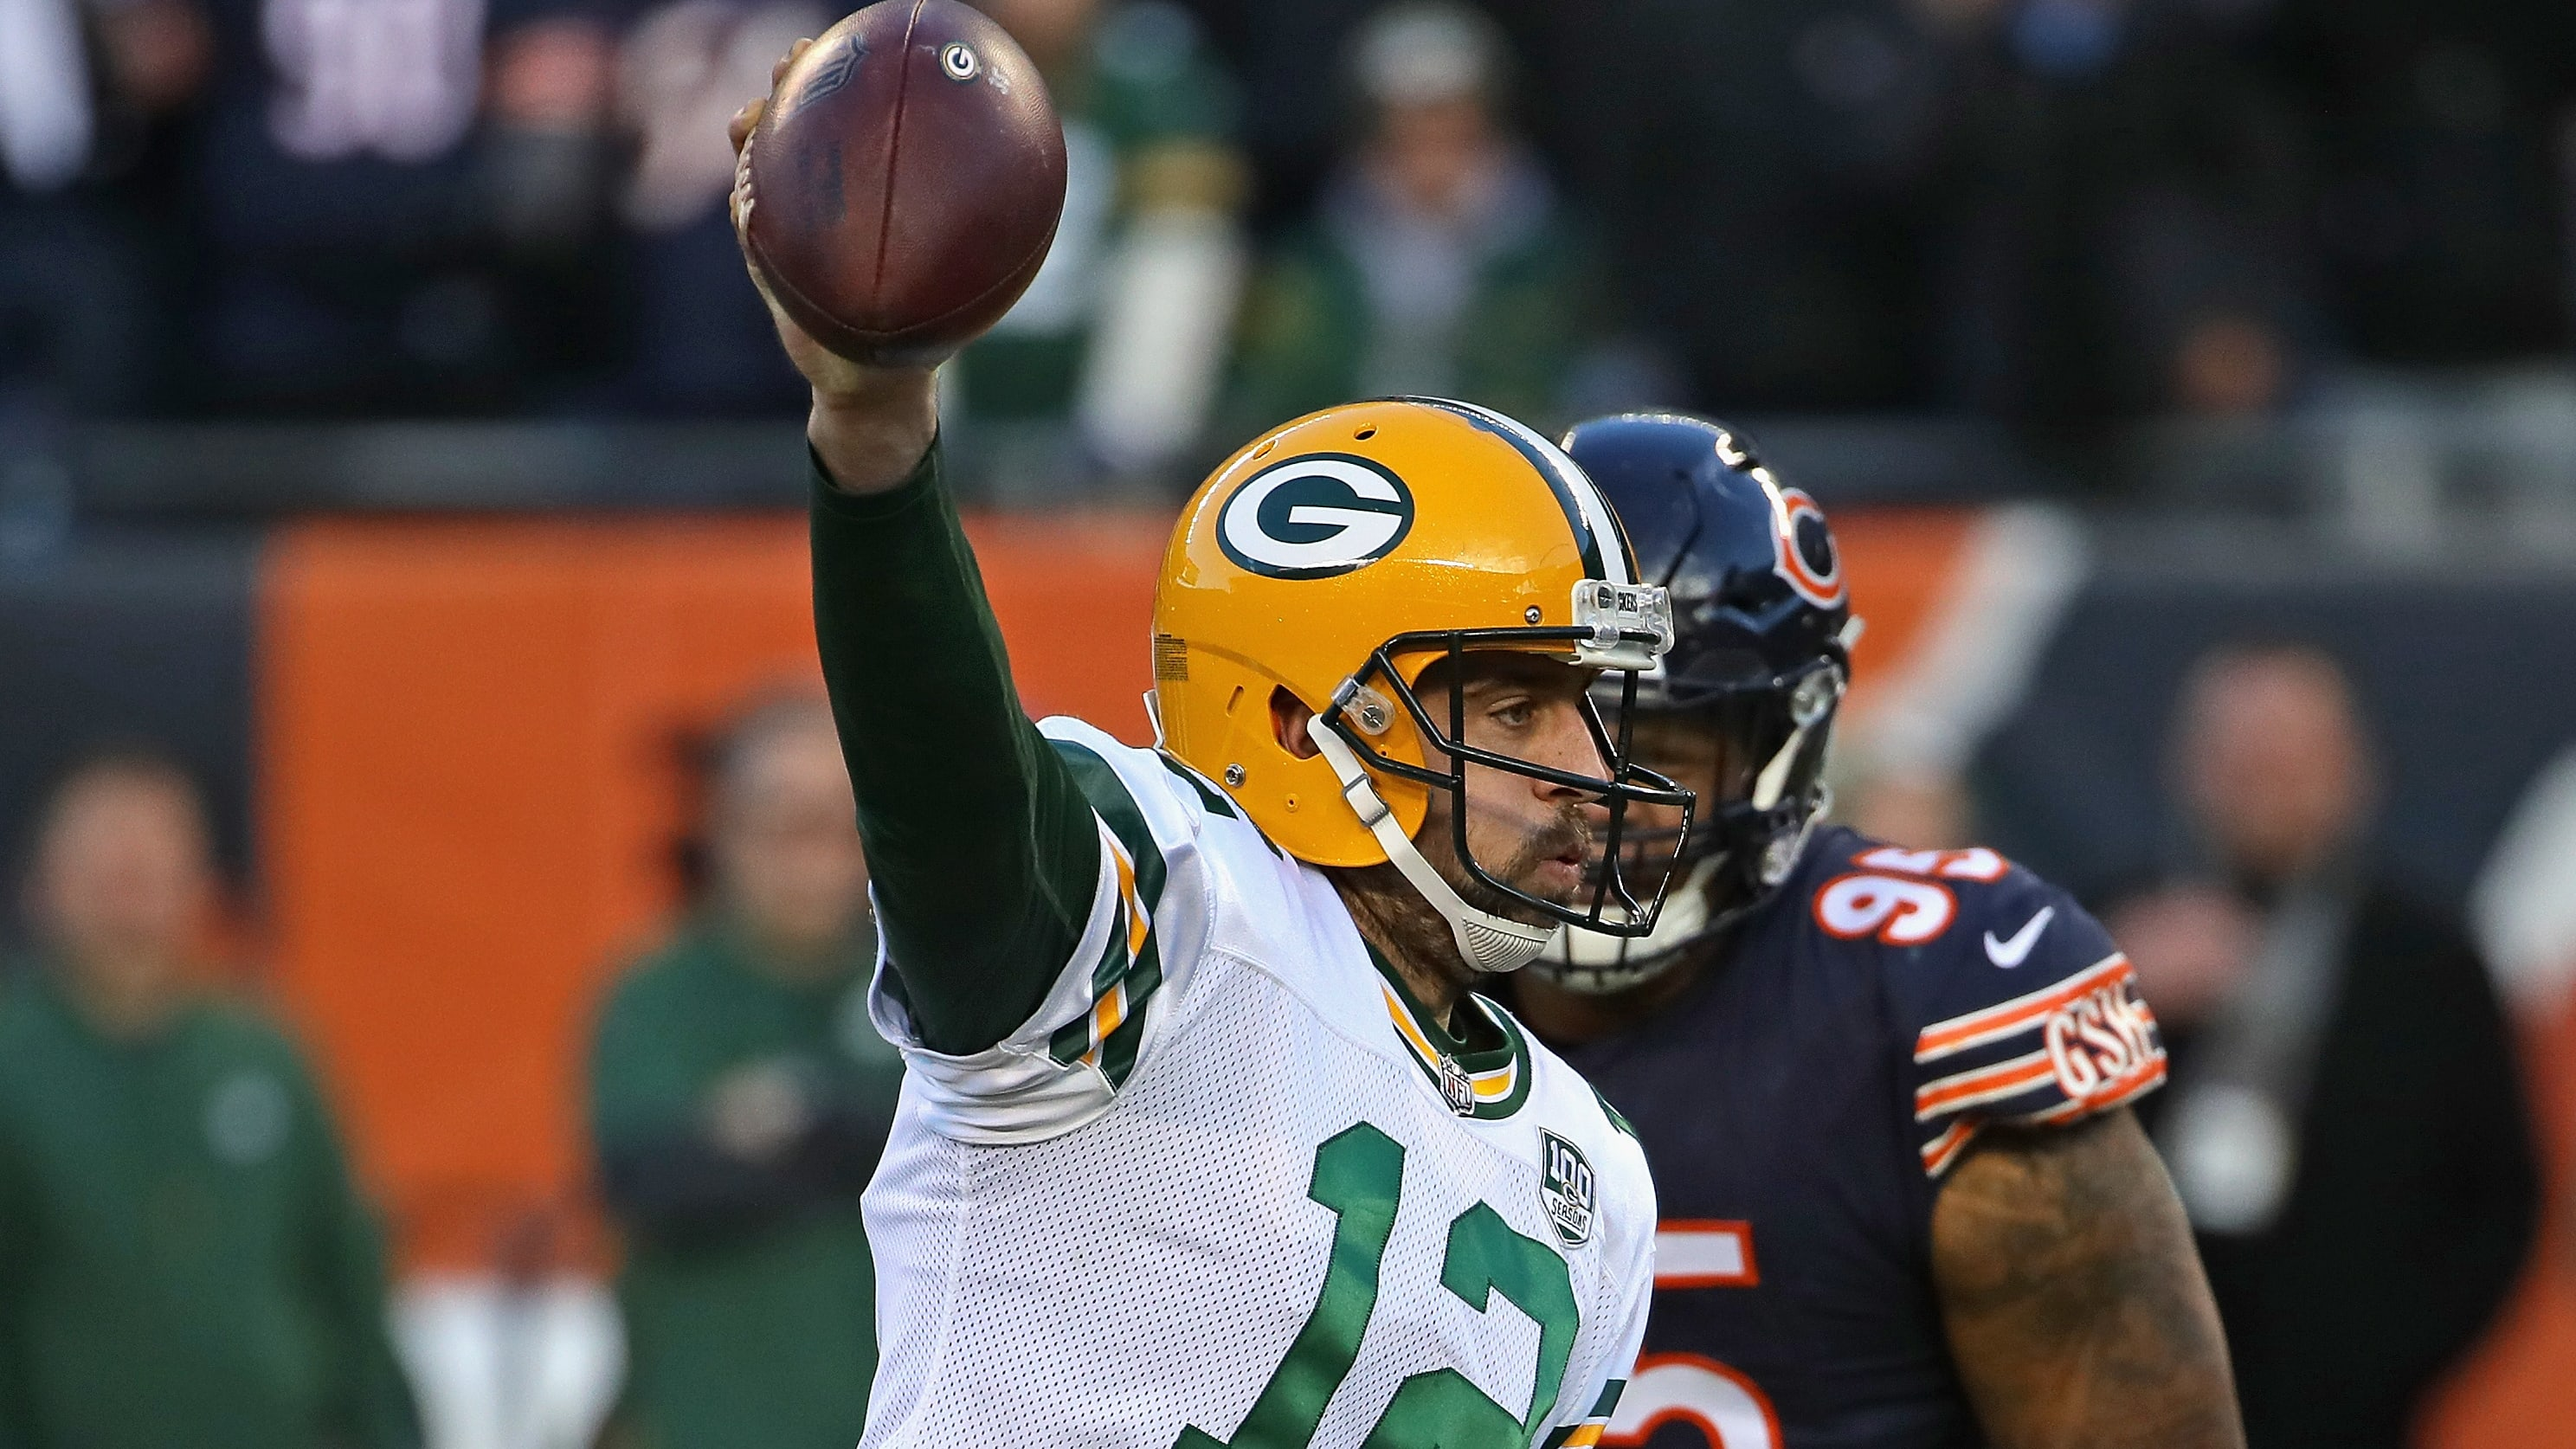 CHICAGO, IL - DECEMBER 16:  Aaron Rodgers #12 of the Green Bay Packers is pursued by Roy Robertson-Harris #95 of the Chicago Bears at Soldier Field on December 16, 2018 in Chicago, Illinois.The Bears defeated the Packers 24-17.  (Photo by Jonathan Daniel/Getty Images)